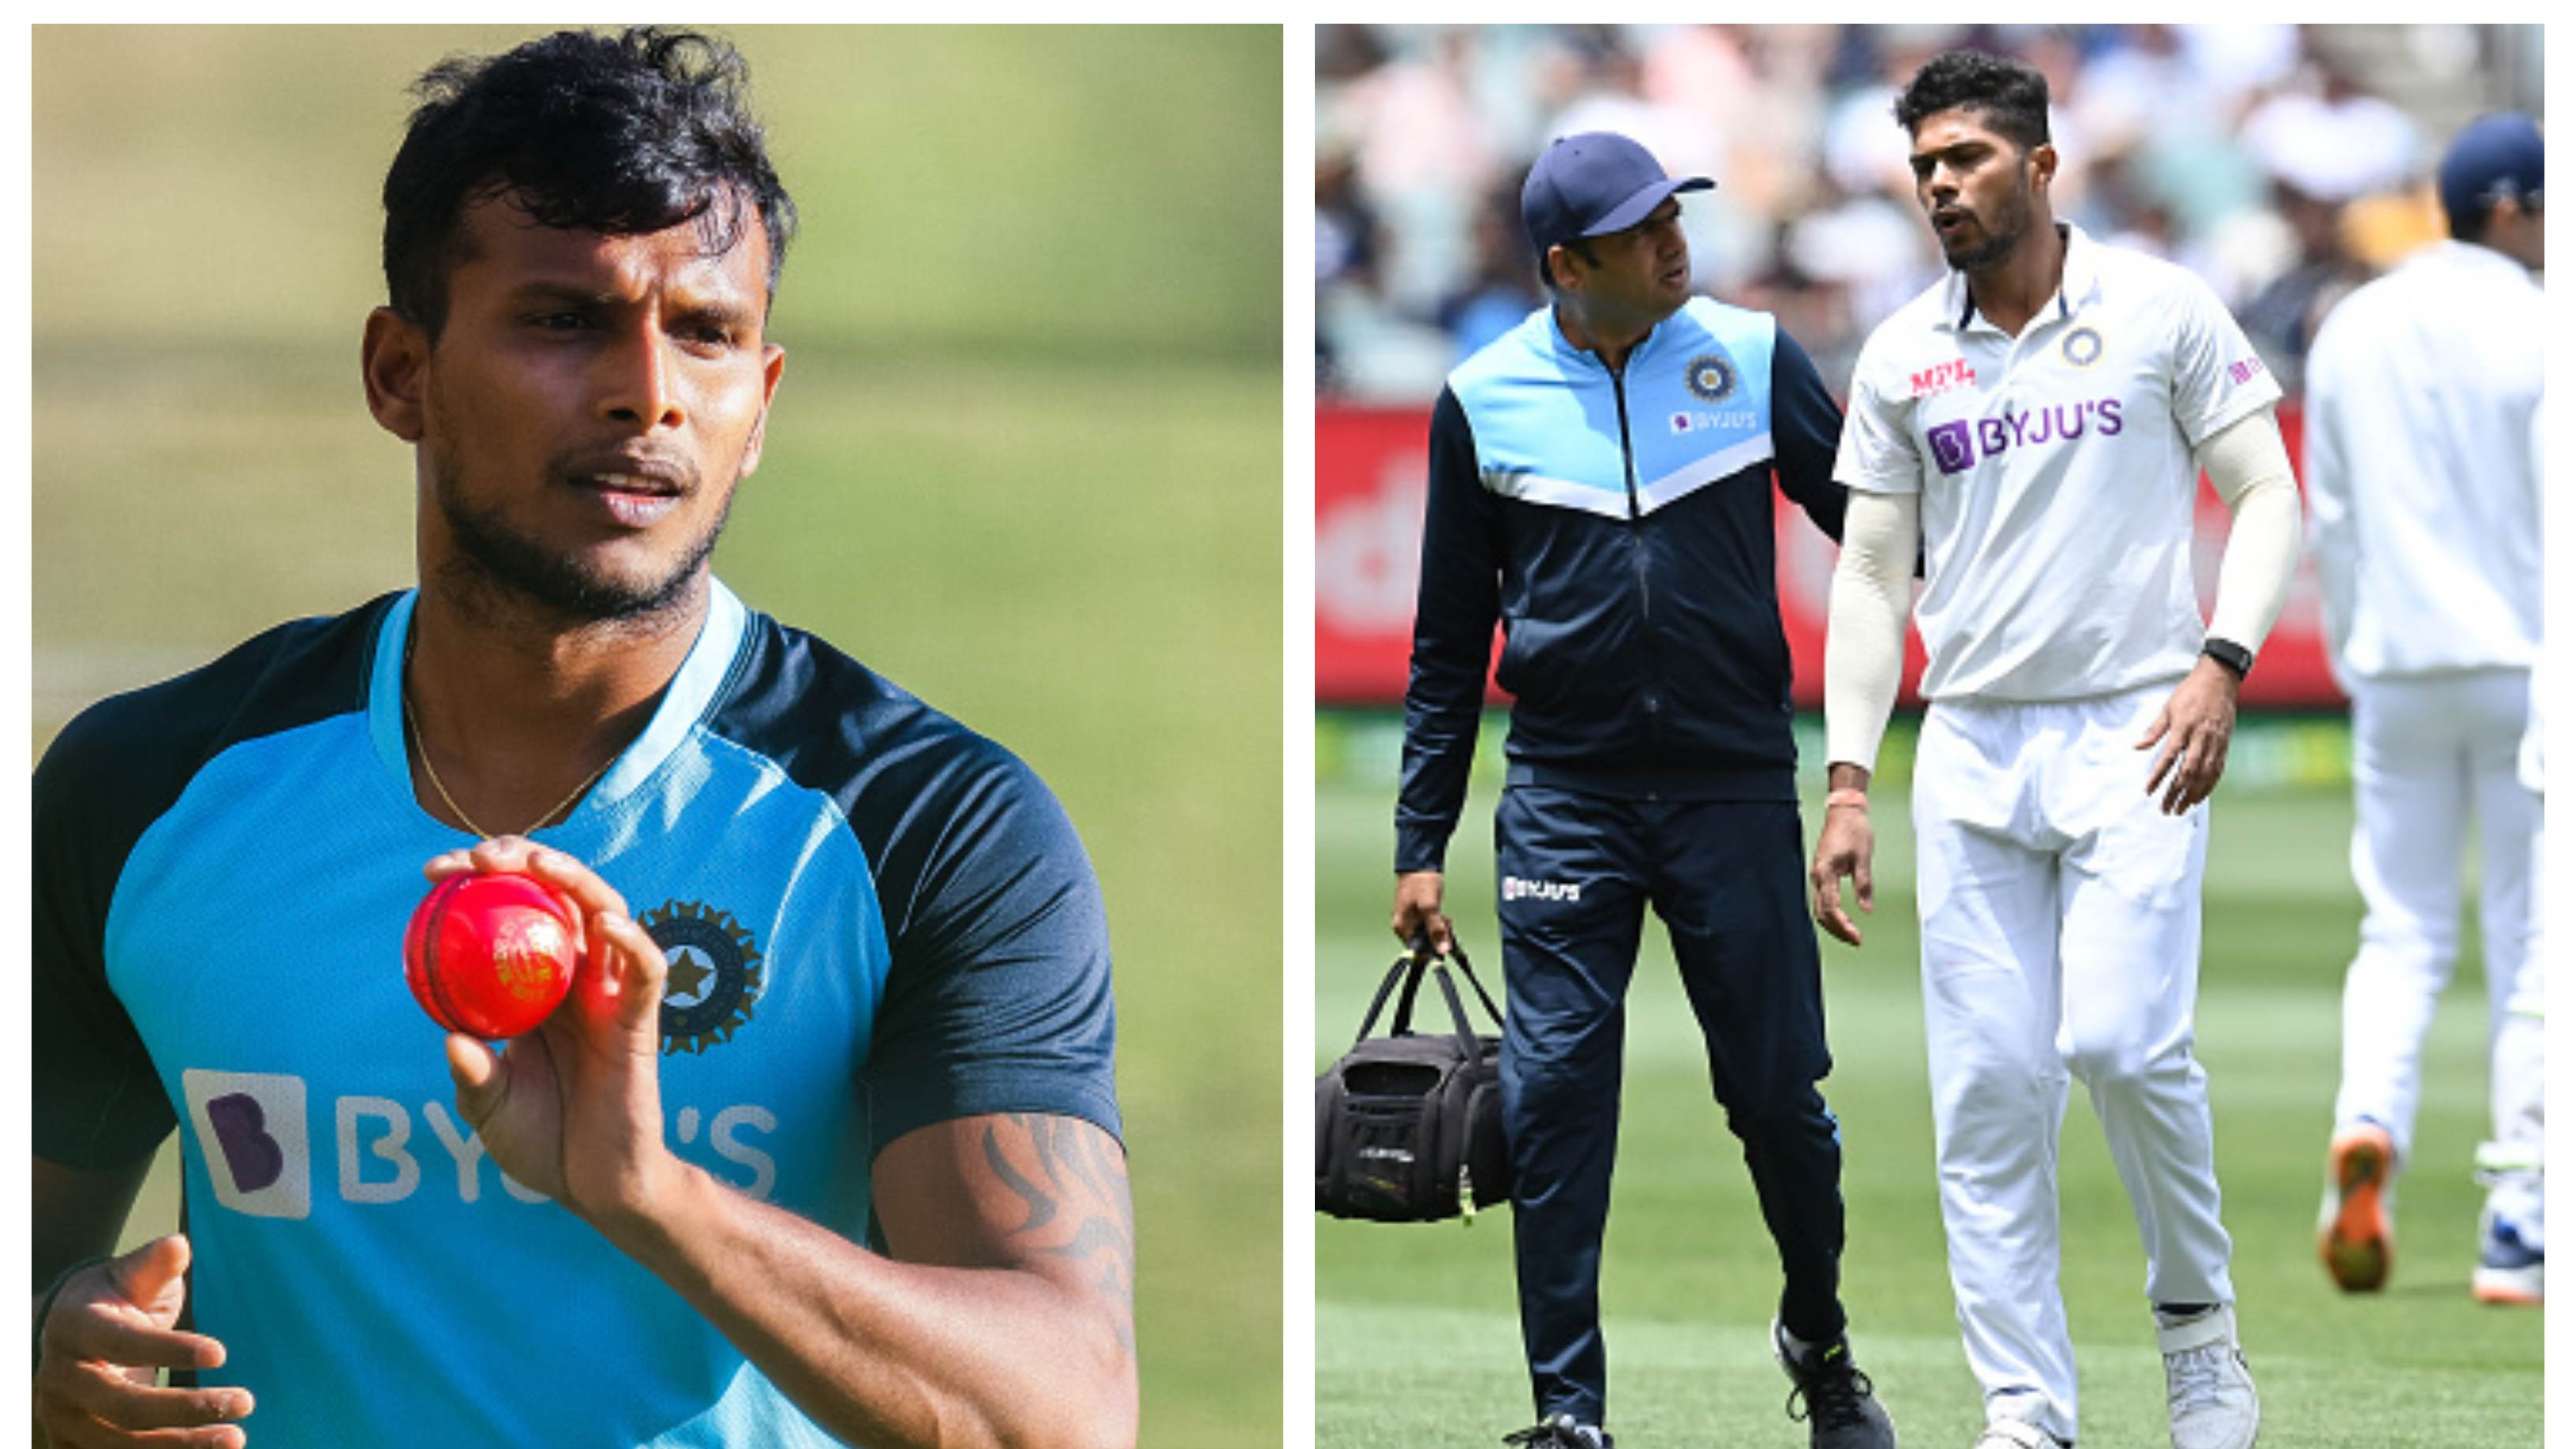 AUS v IND 2020-21: T Natarajan likely to be added in India's Test squad as Umesh Yadav's cover, says report